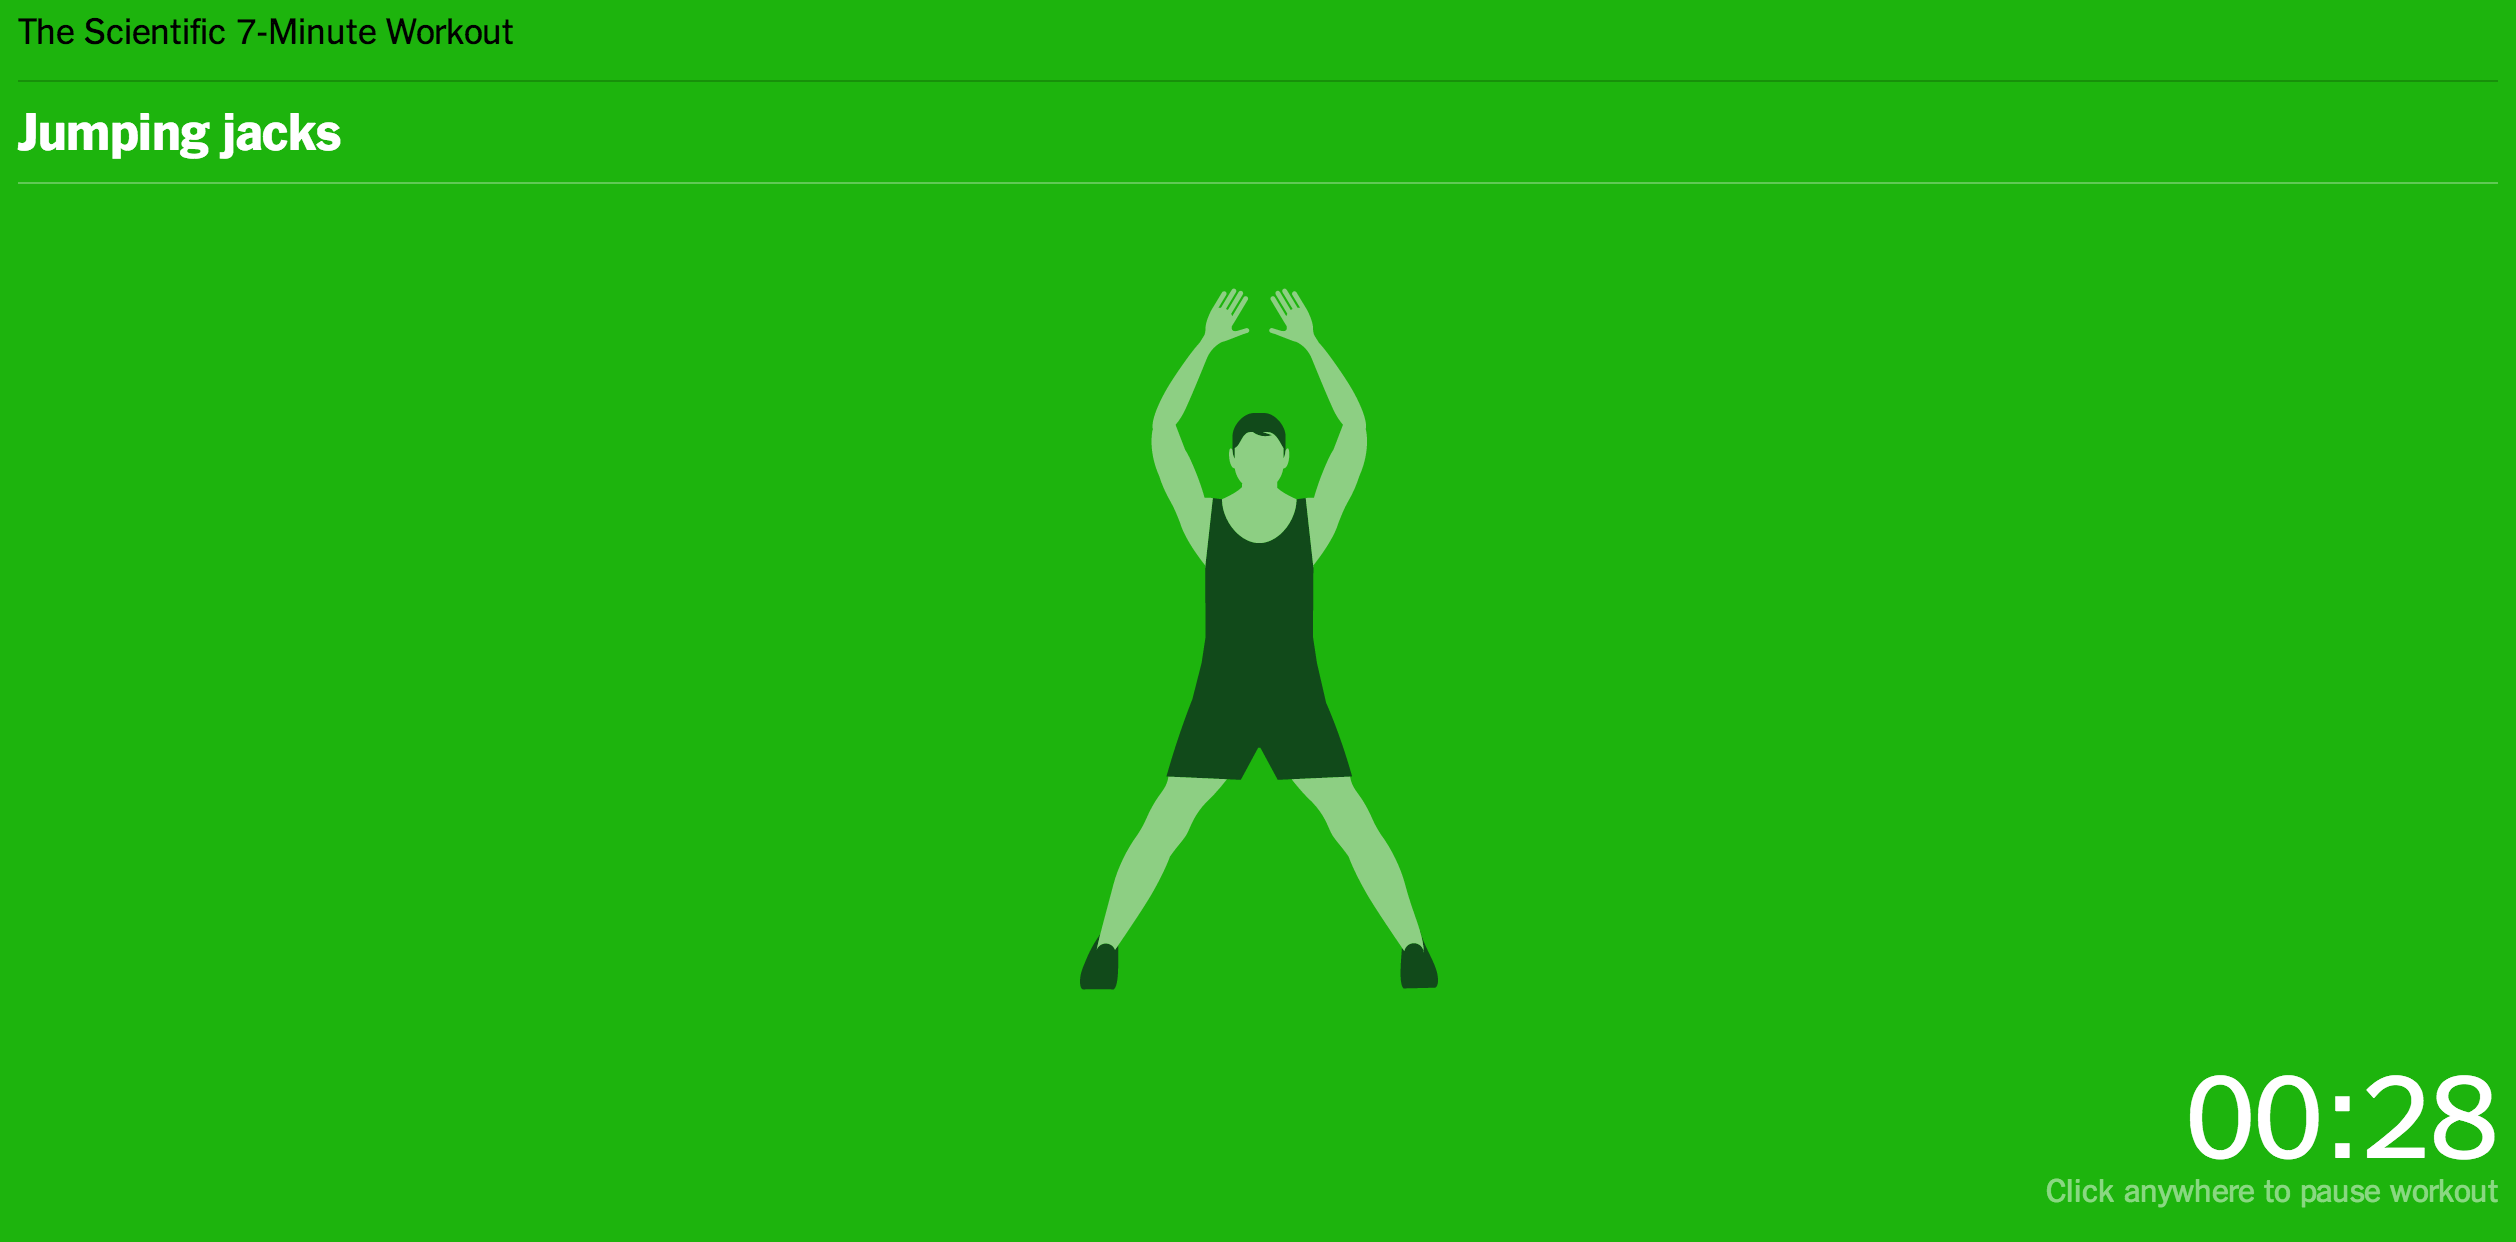 TNW's Apps of the Year: 7 Minute Workout Gets You Moving